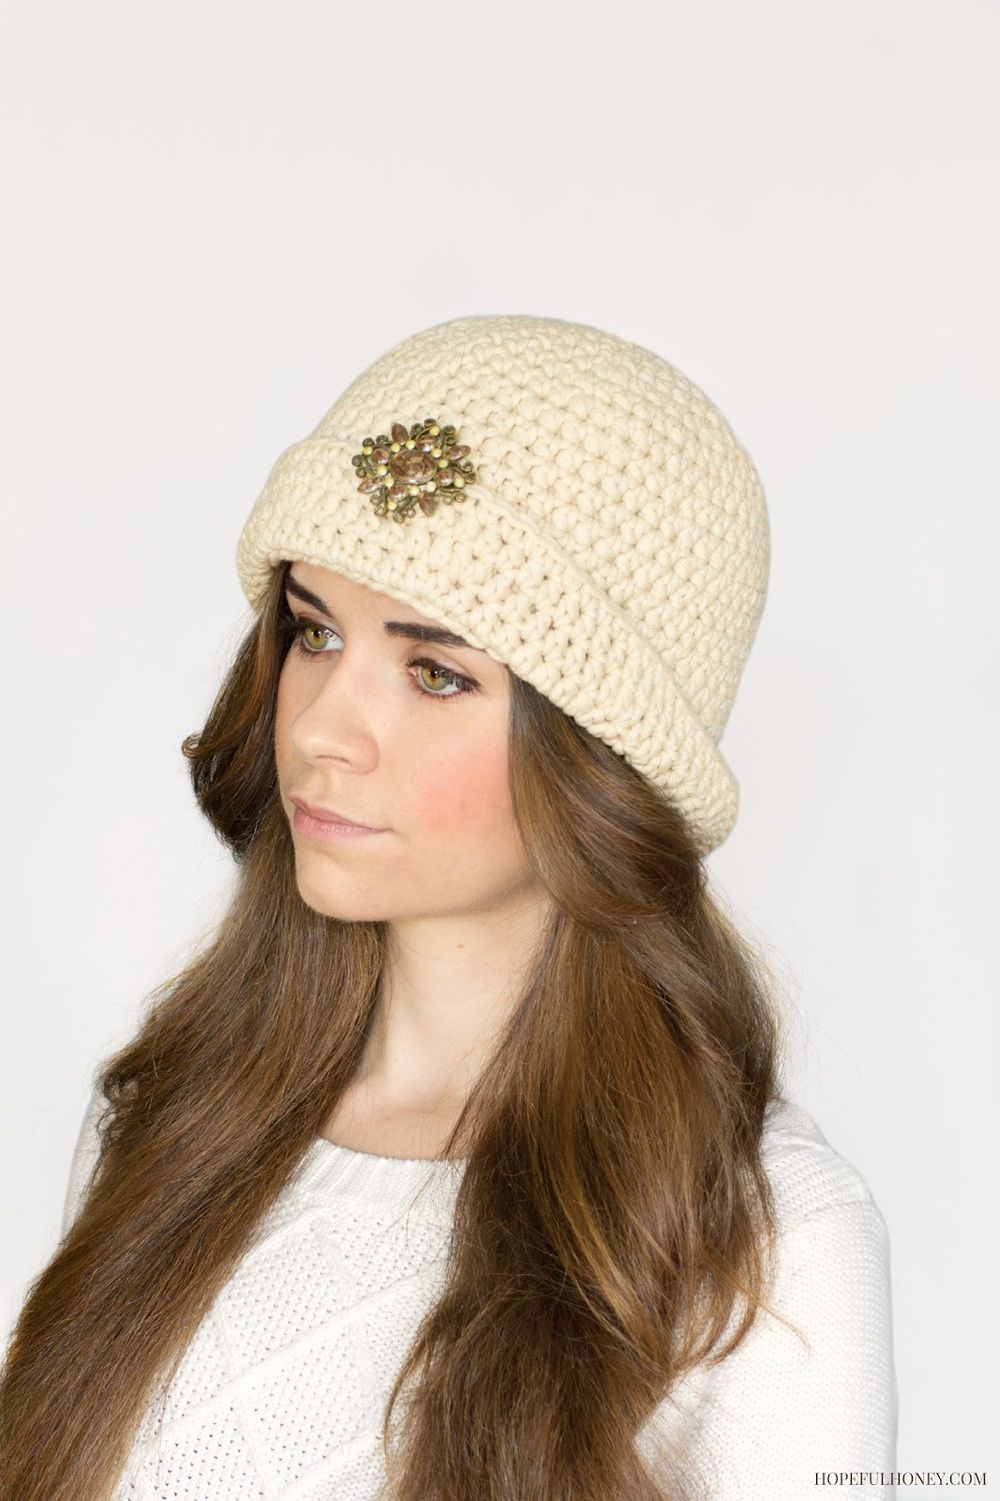 Great Gatsby Crochet Cloche Hat Pattern Knit Crochet Crochet